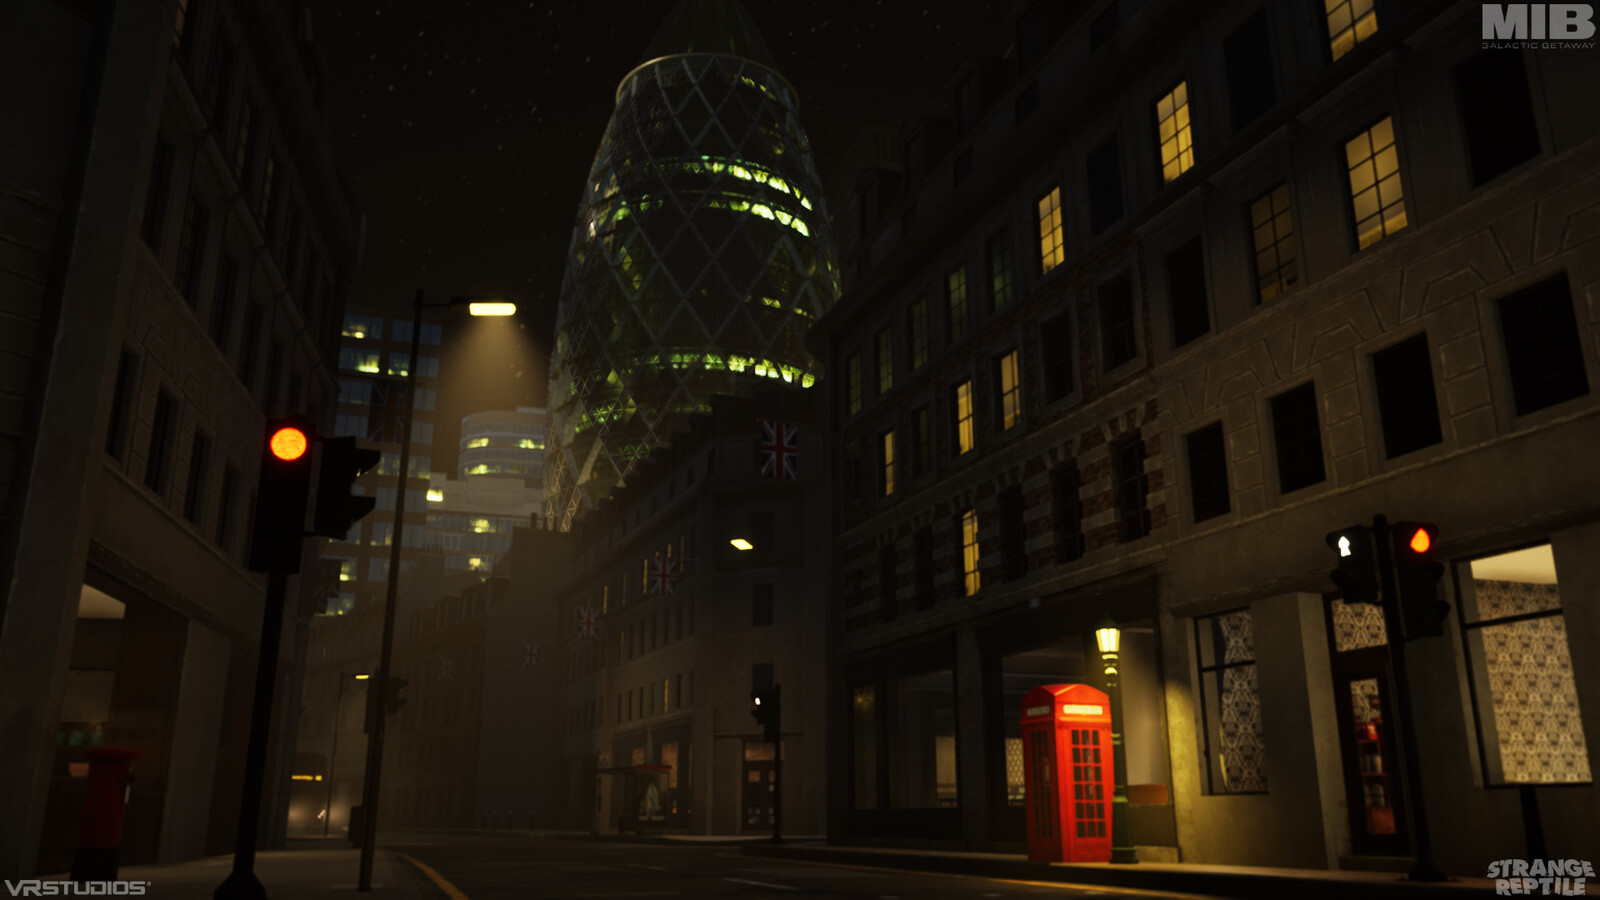 London entrance and its detail lighting below